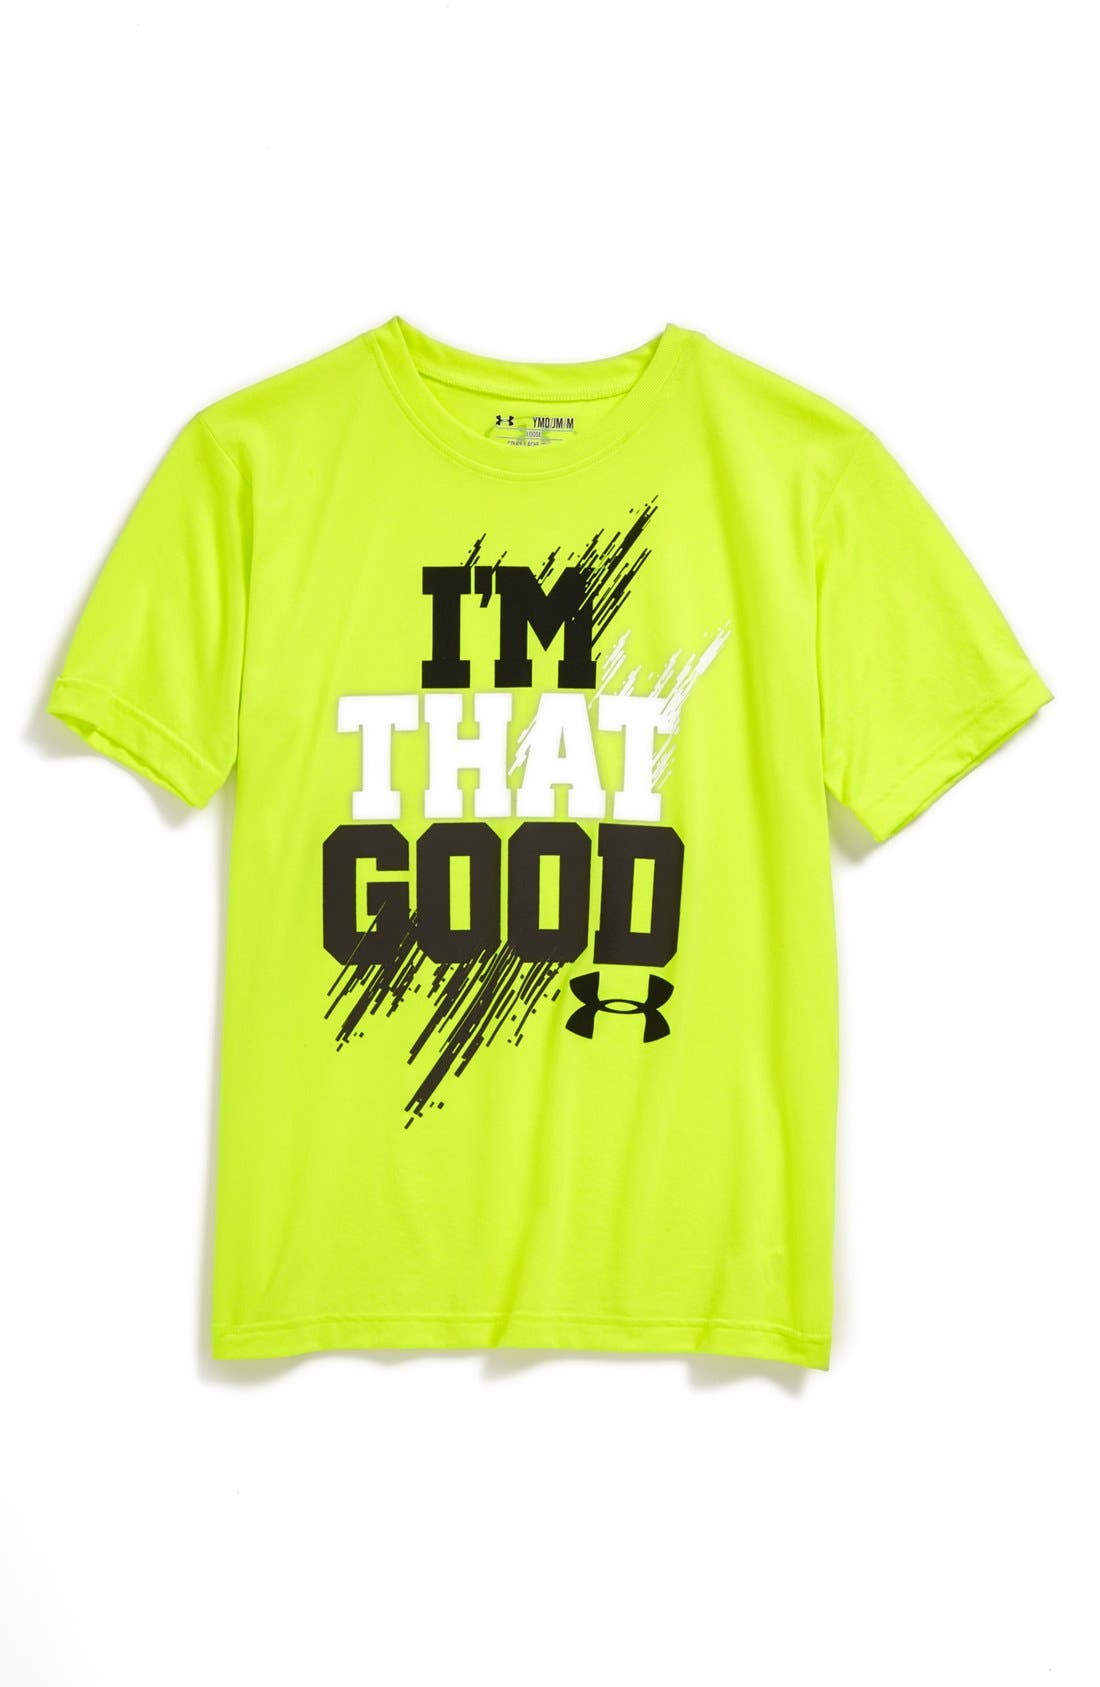 Alternate Image 1 Selected - Under Armour 'I'm That Good' HeatGear® T-Shirt (Big Boys)